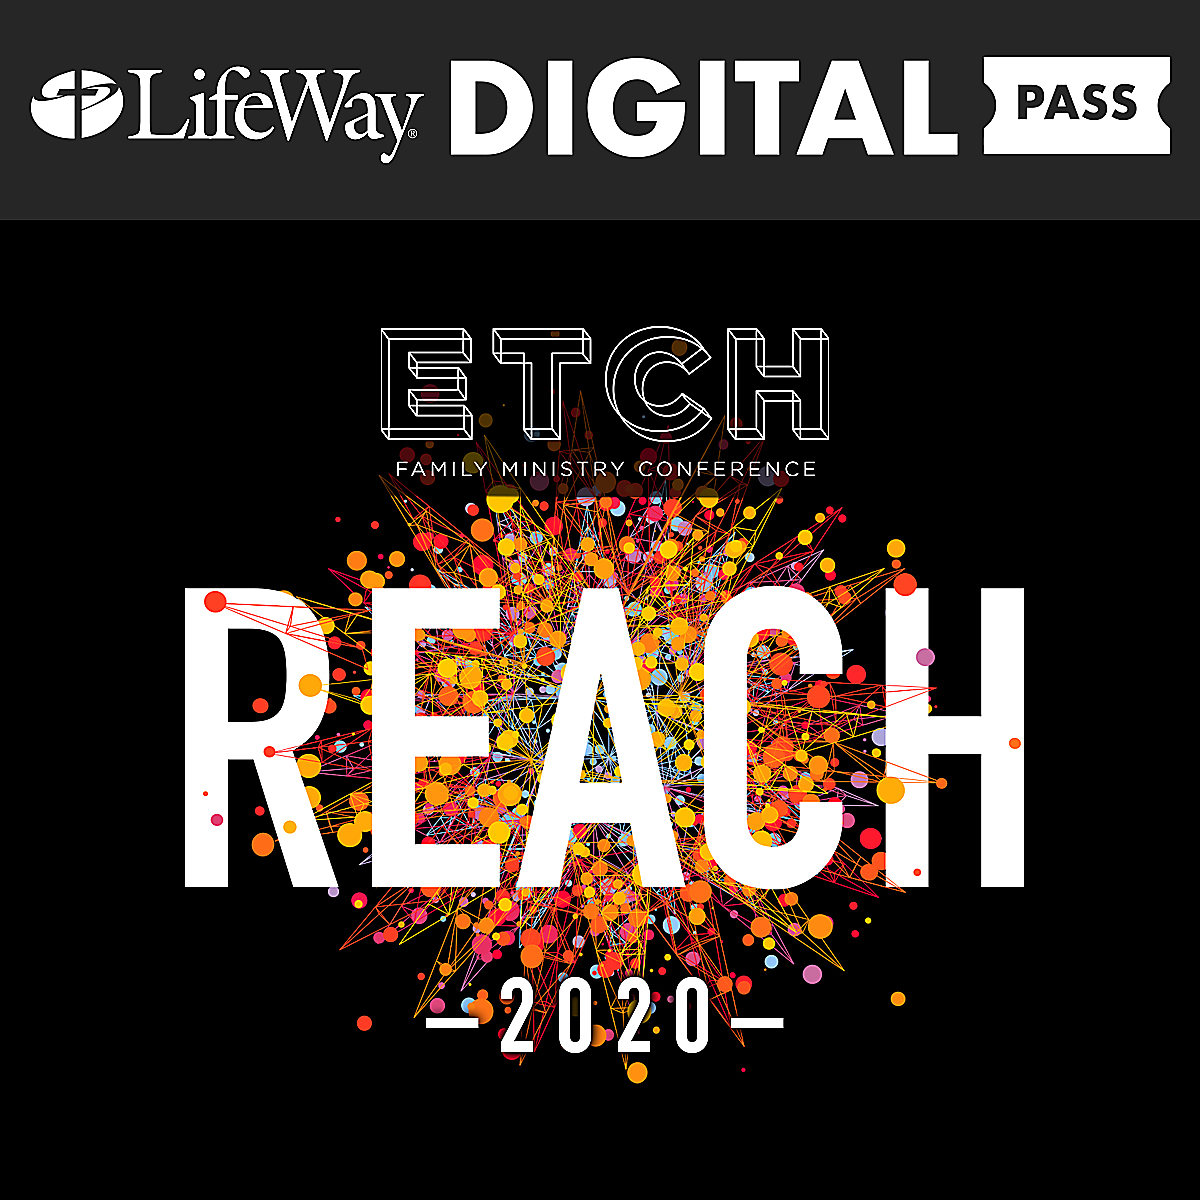 ETCH Family Ministry Conference 2020 Digital Pass